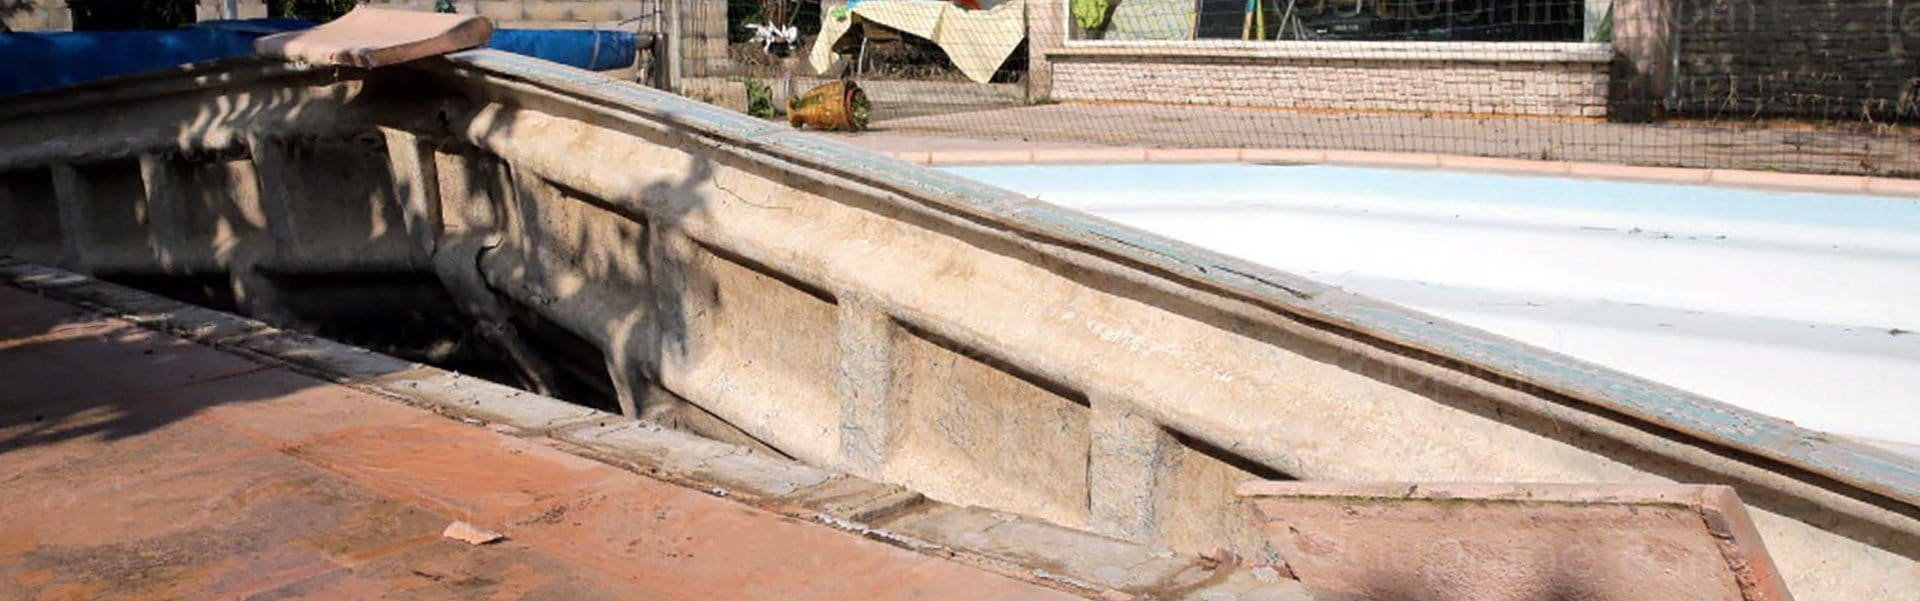 Paroles d 39 experts le terrassement l 39 origine de la for Construction piscine vosges